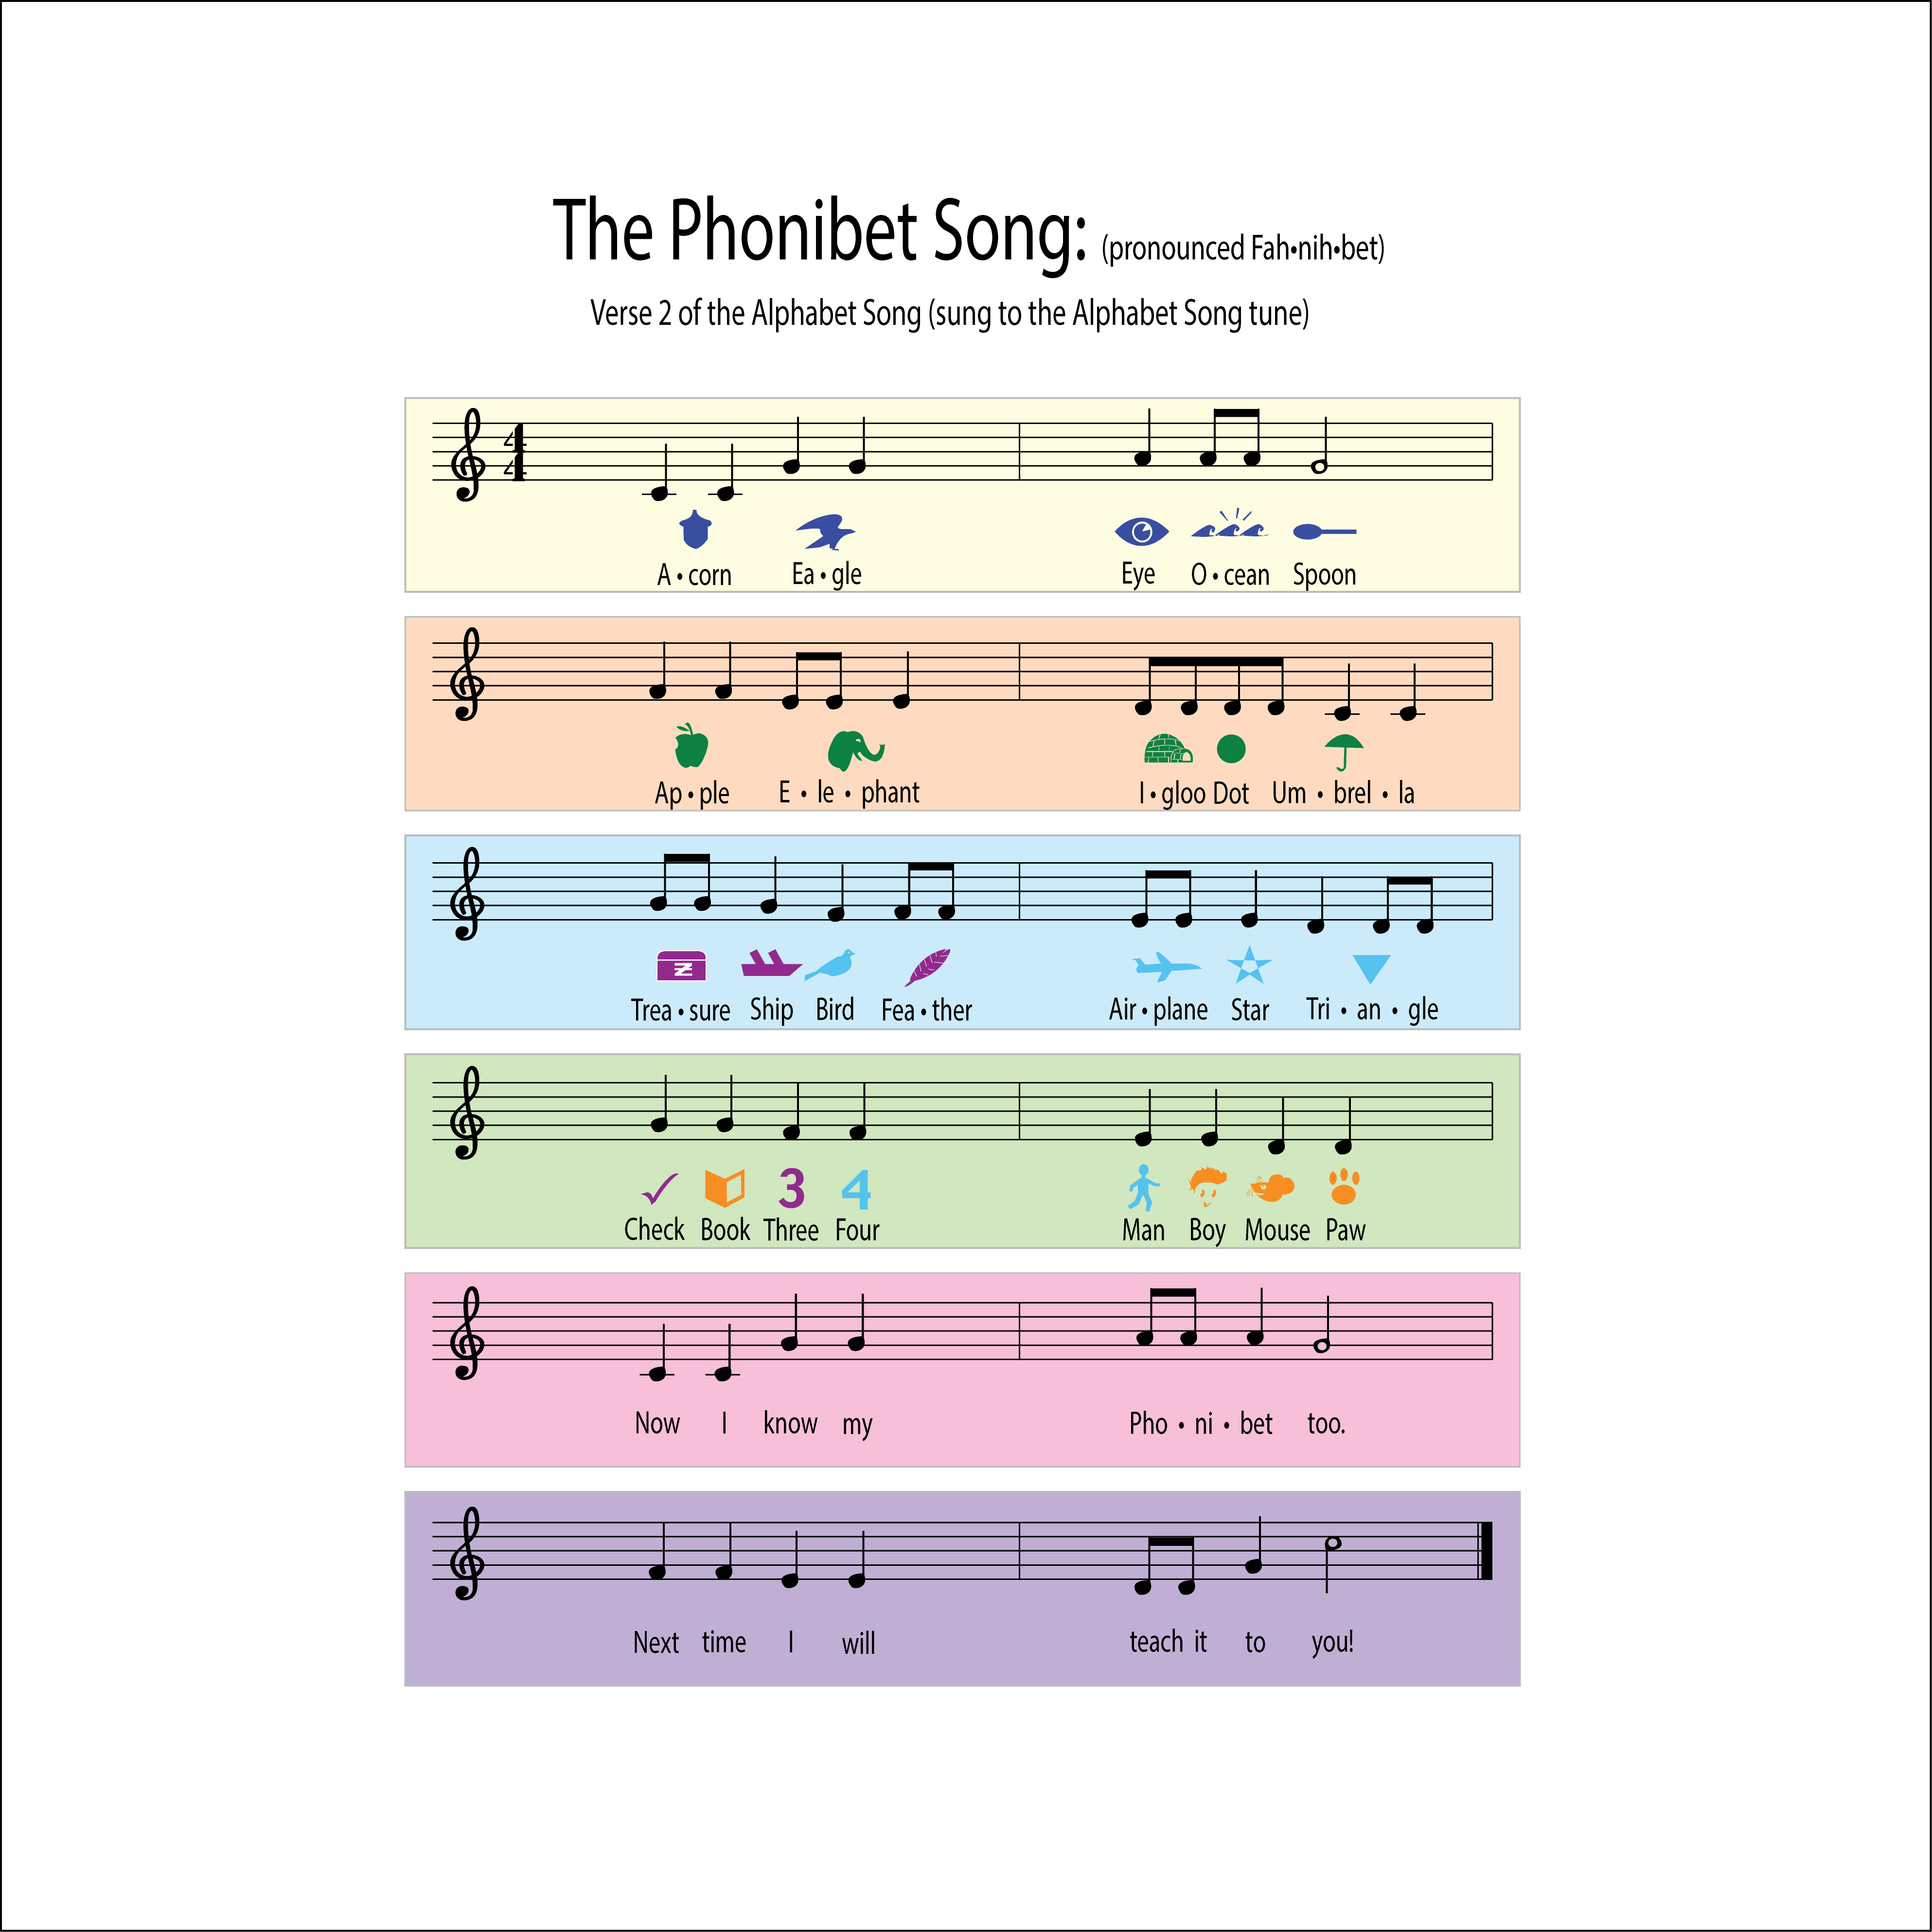 new phonibet song 7-22